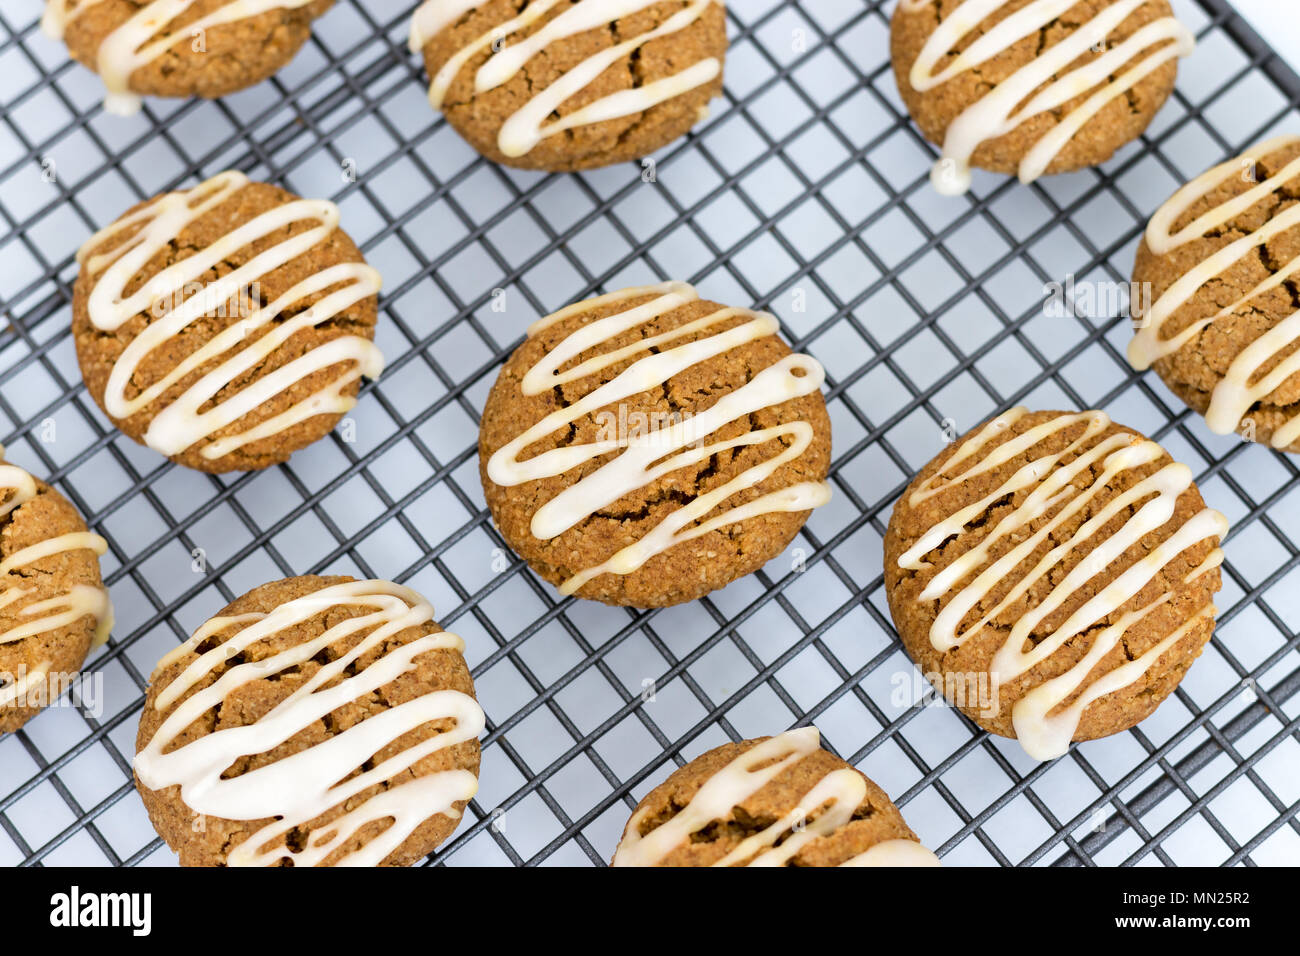 Freshly baked, homemade pumpkin spice cookies, with maple icing. These gluten and dairy free biscuits are displayed on a wire cooling. Stock Photo